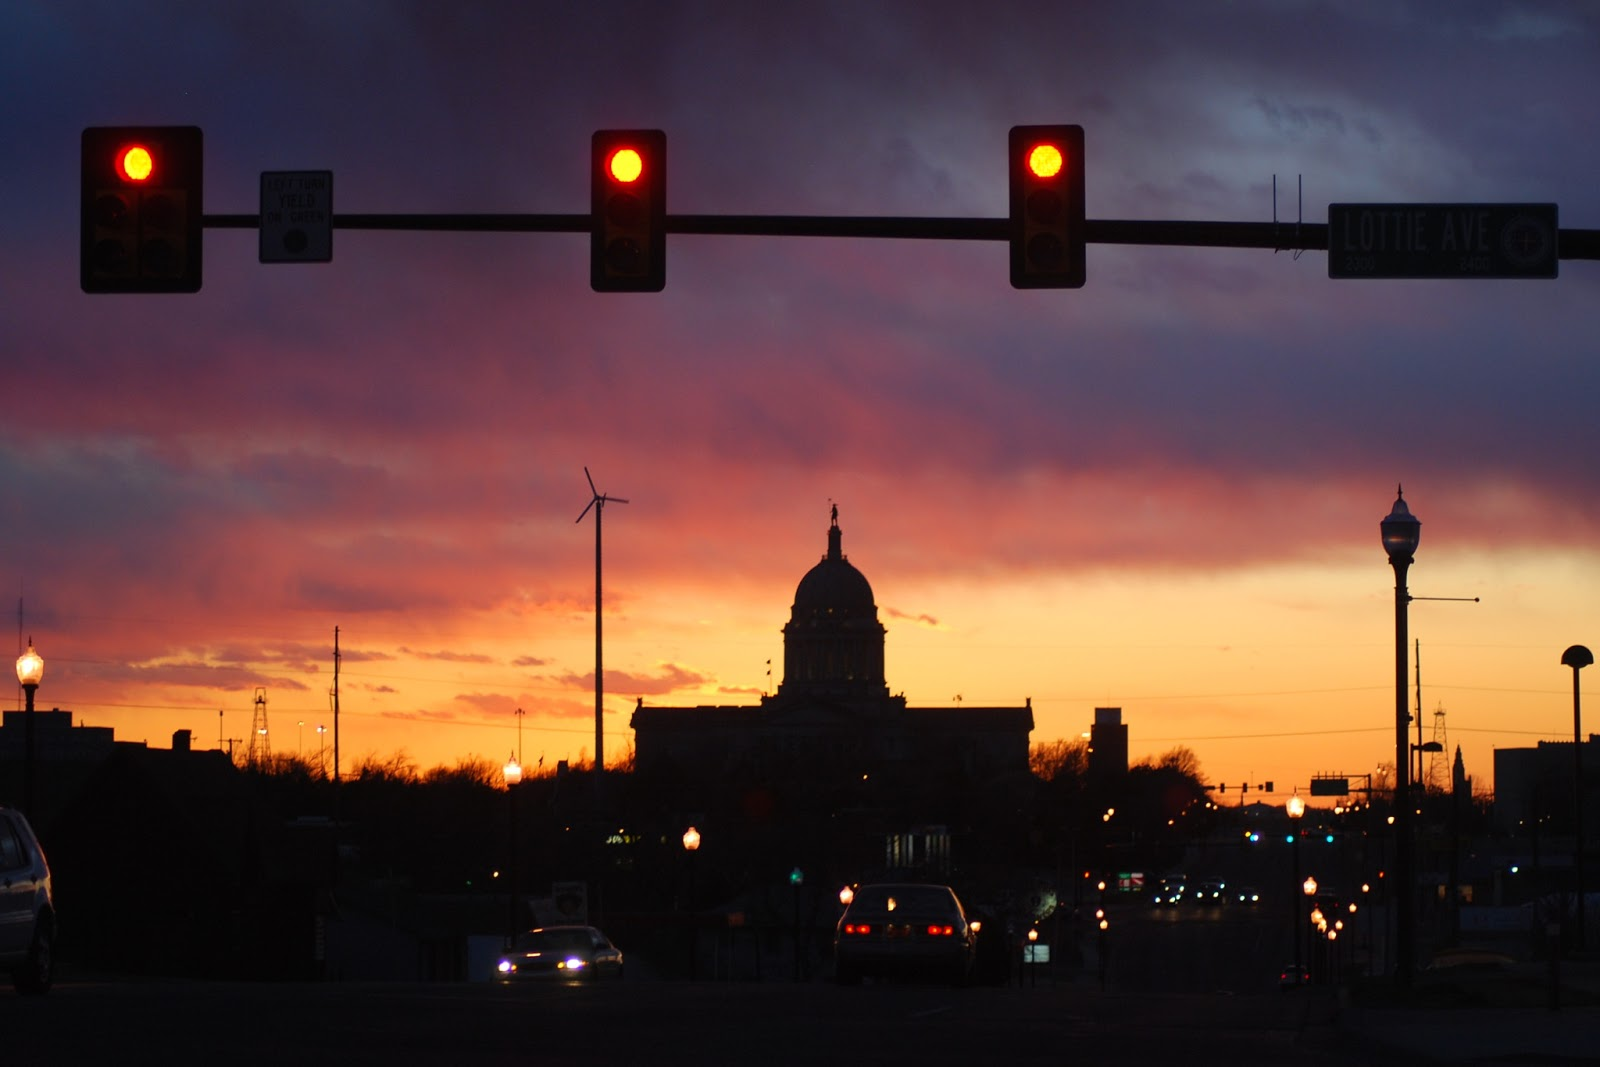 Life in the Heartland and the Oklahoma State Capitol at Sunset